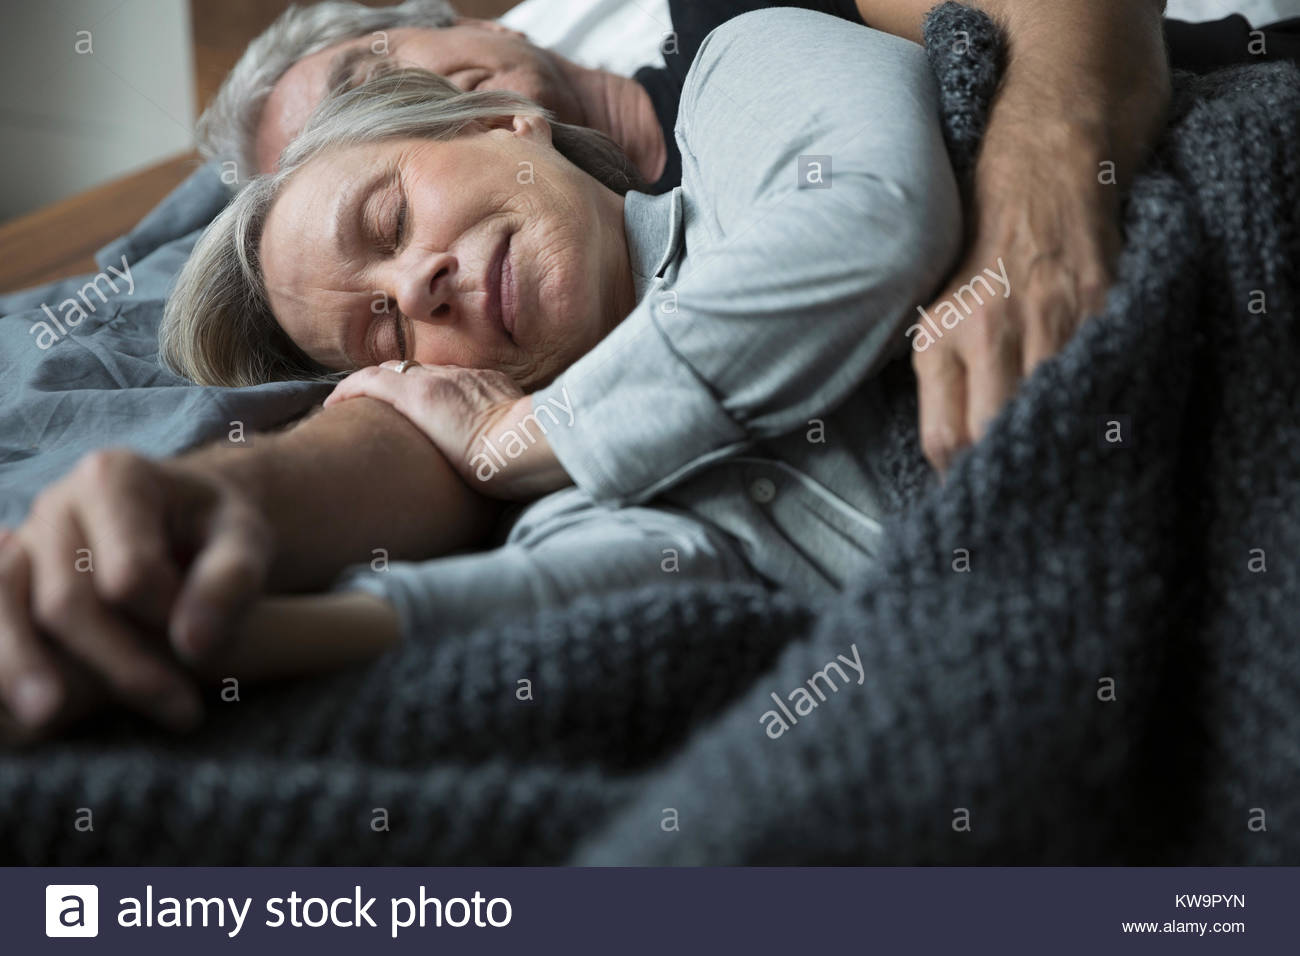 Serene senior couple sleeping in bed - Stock Image